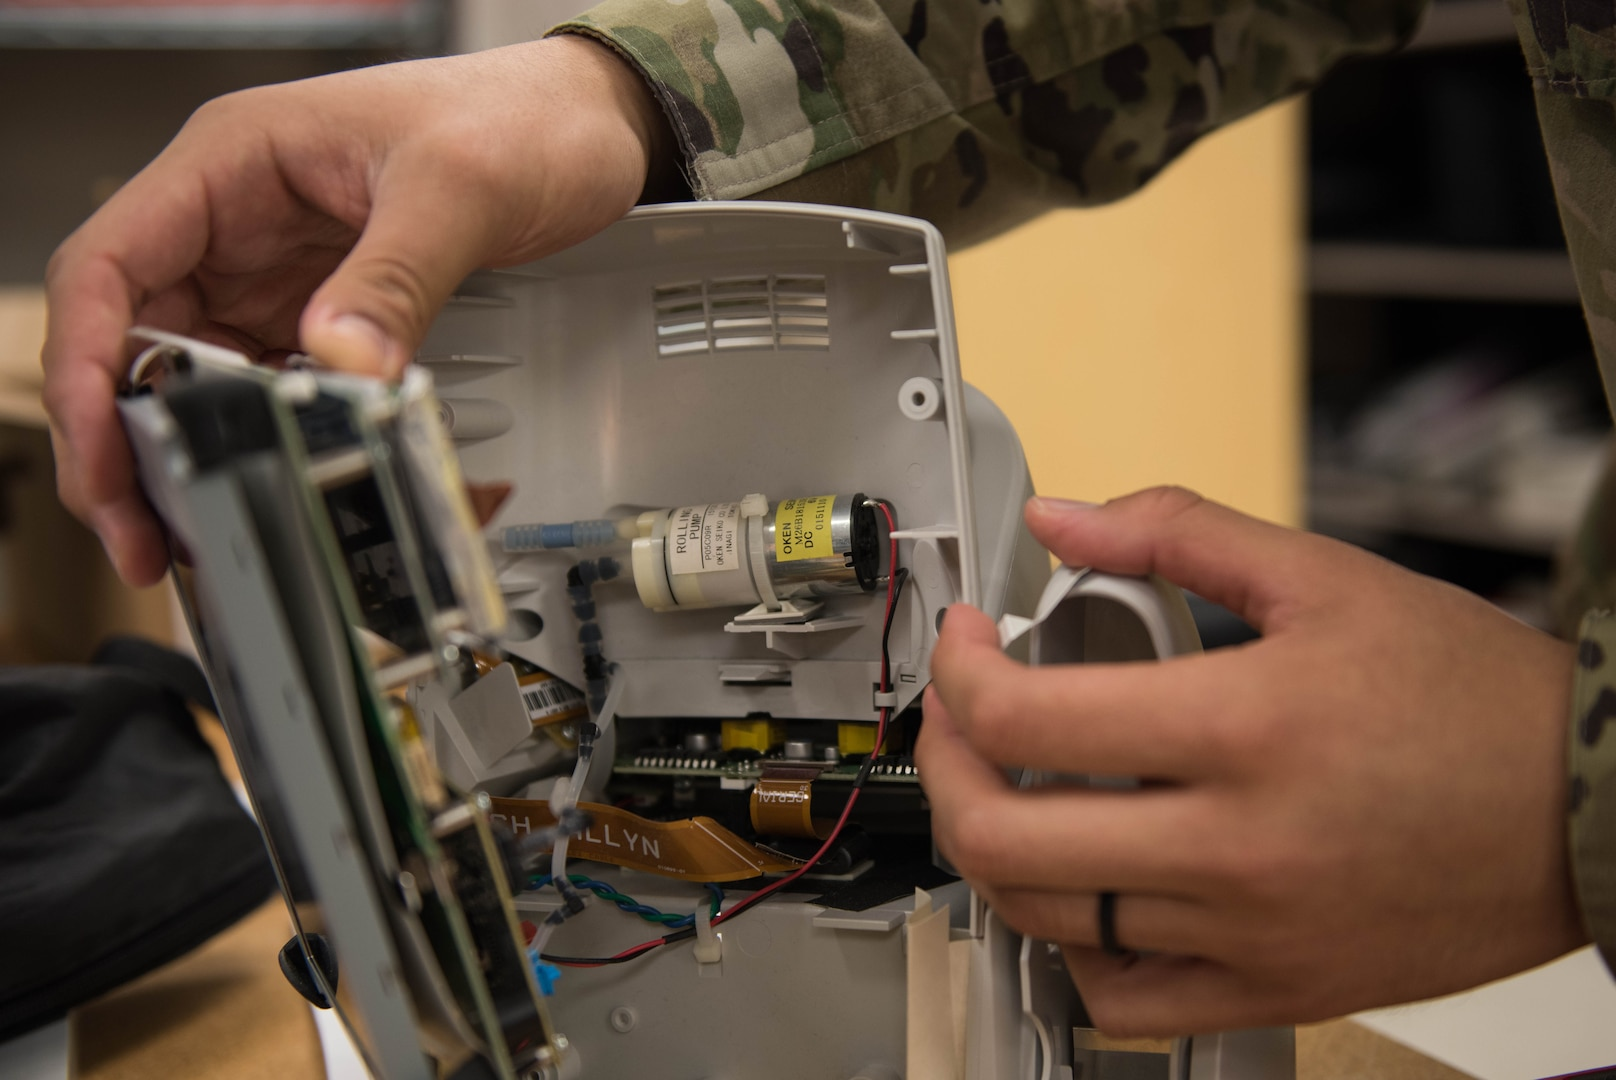 U.S. Air Force Airman 1st Class Timothy Torres, 633rd Medical Group biomedical equipment technician, checks on the motor of a vital signs monitor at Joint Base Langley-Eustis, Virginia, Nov. 8, 2019. BMETs are responsible for routine inspections of equipment throughout Langley Hospital. (U.S. Air Force photo by Airman 1st Class Sarah Dowe)